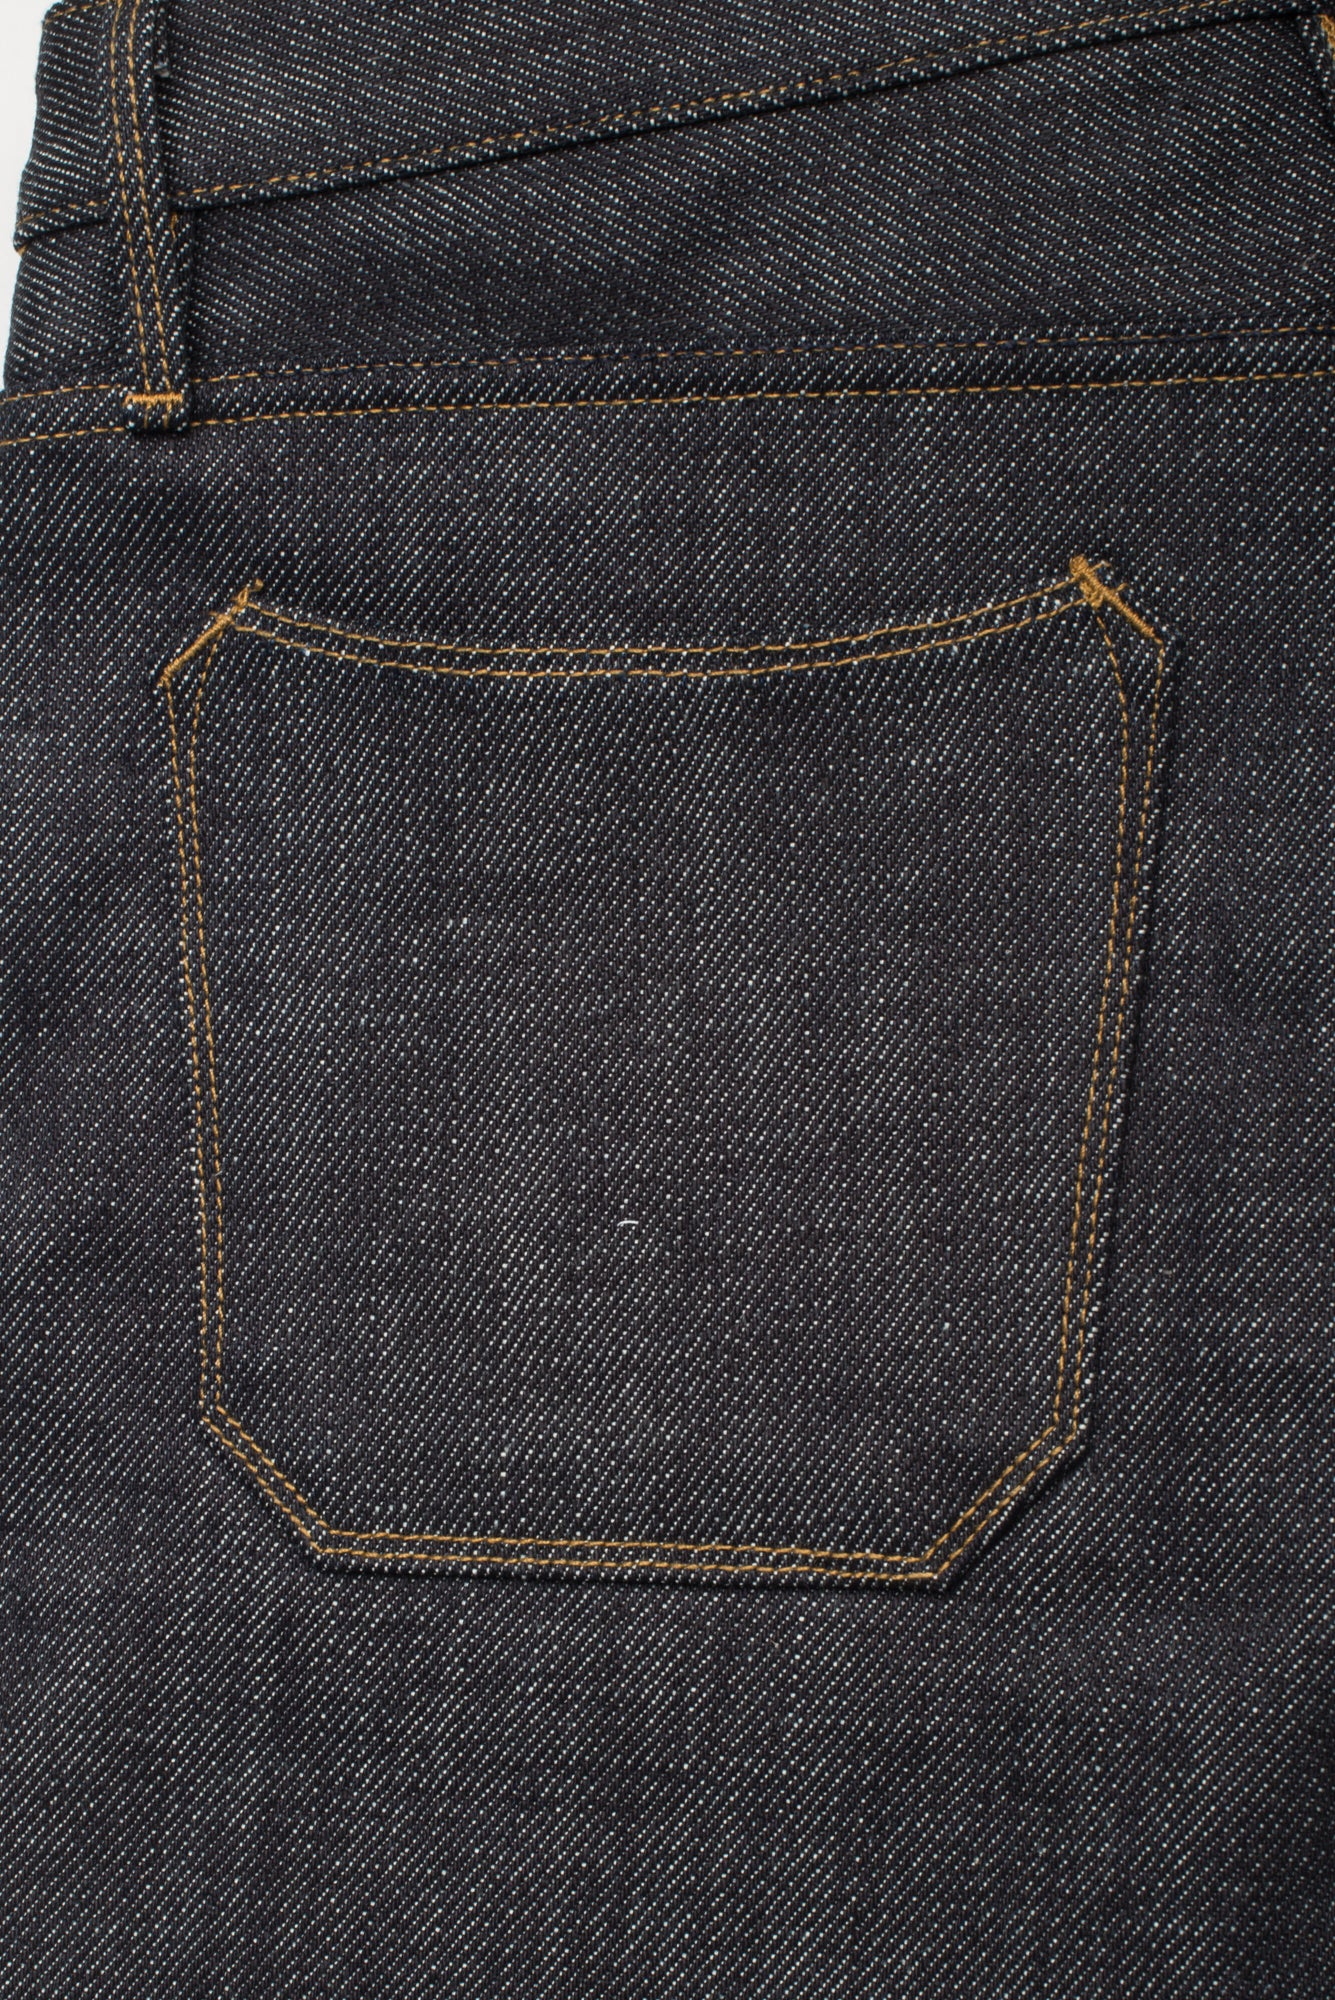 Portola Taper Raw 20 oz Japanese Denim Back Pocket